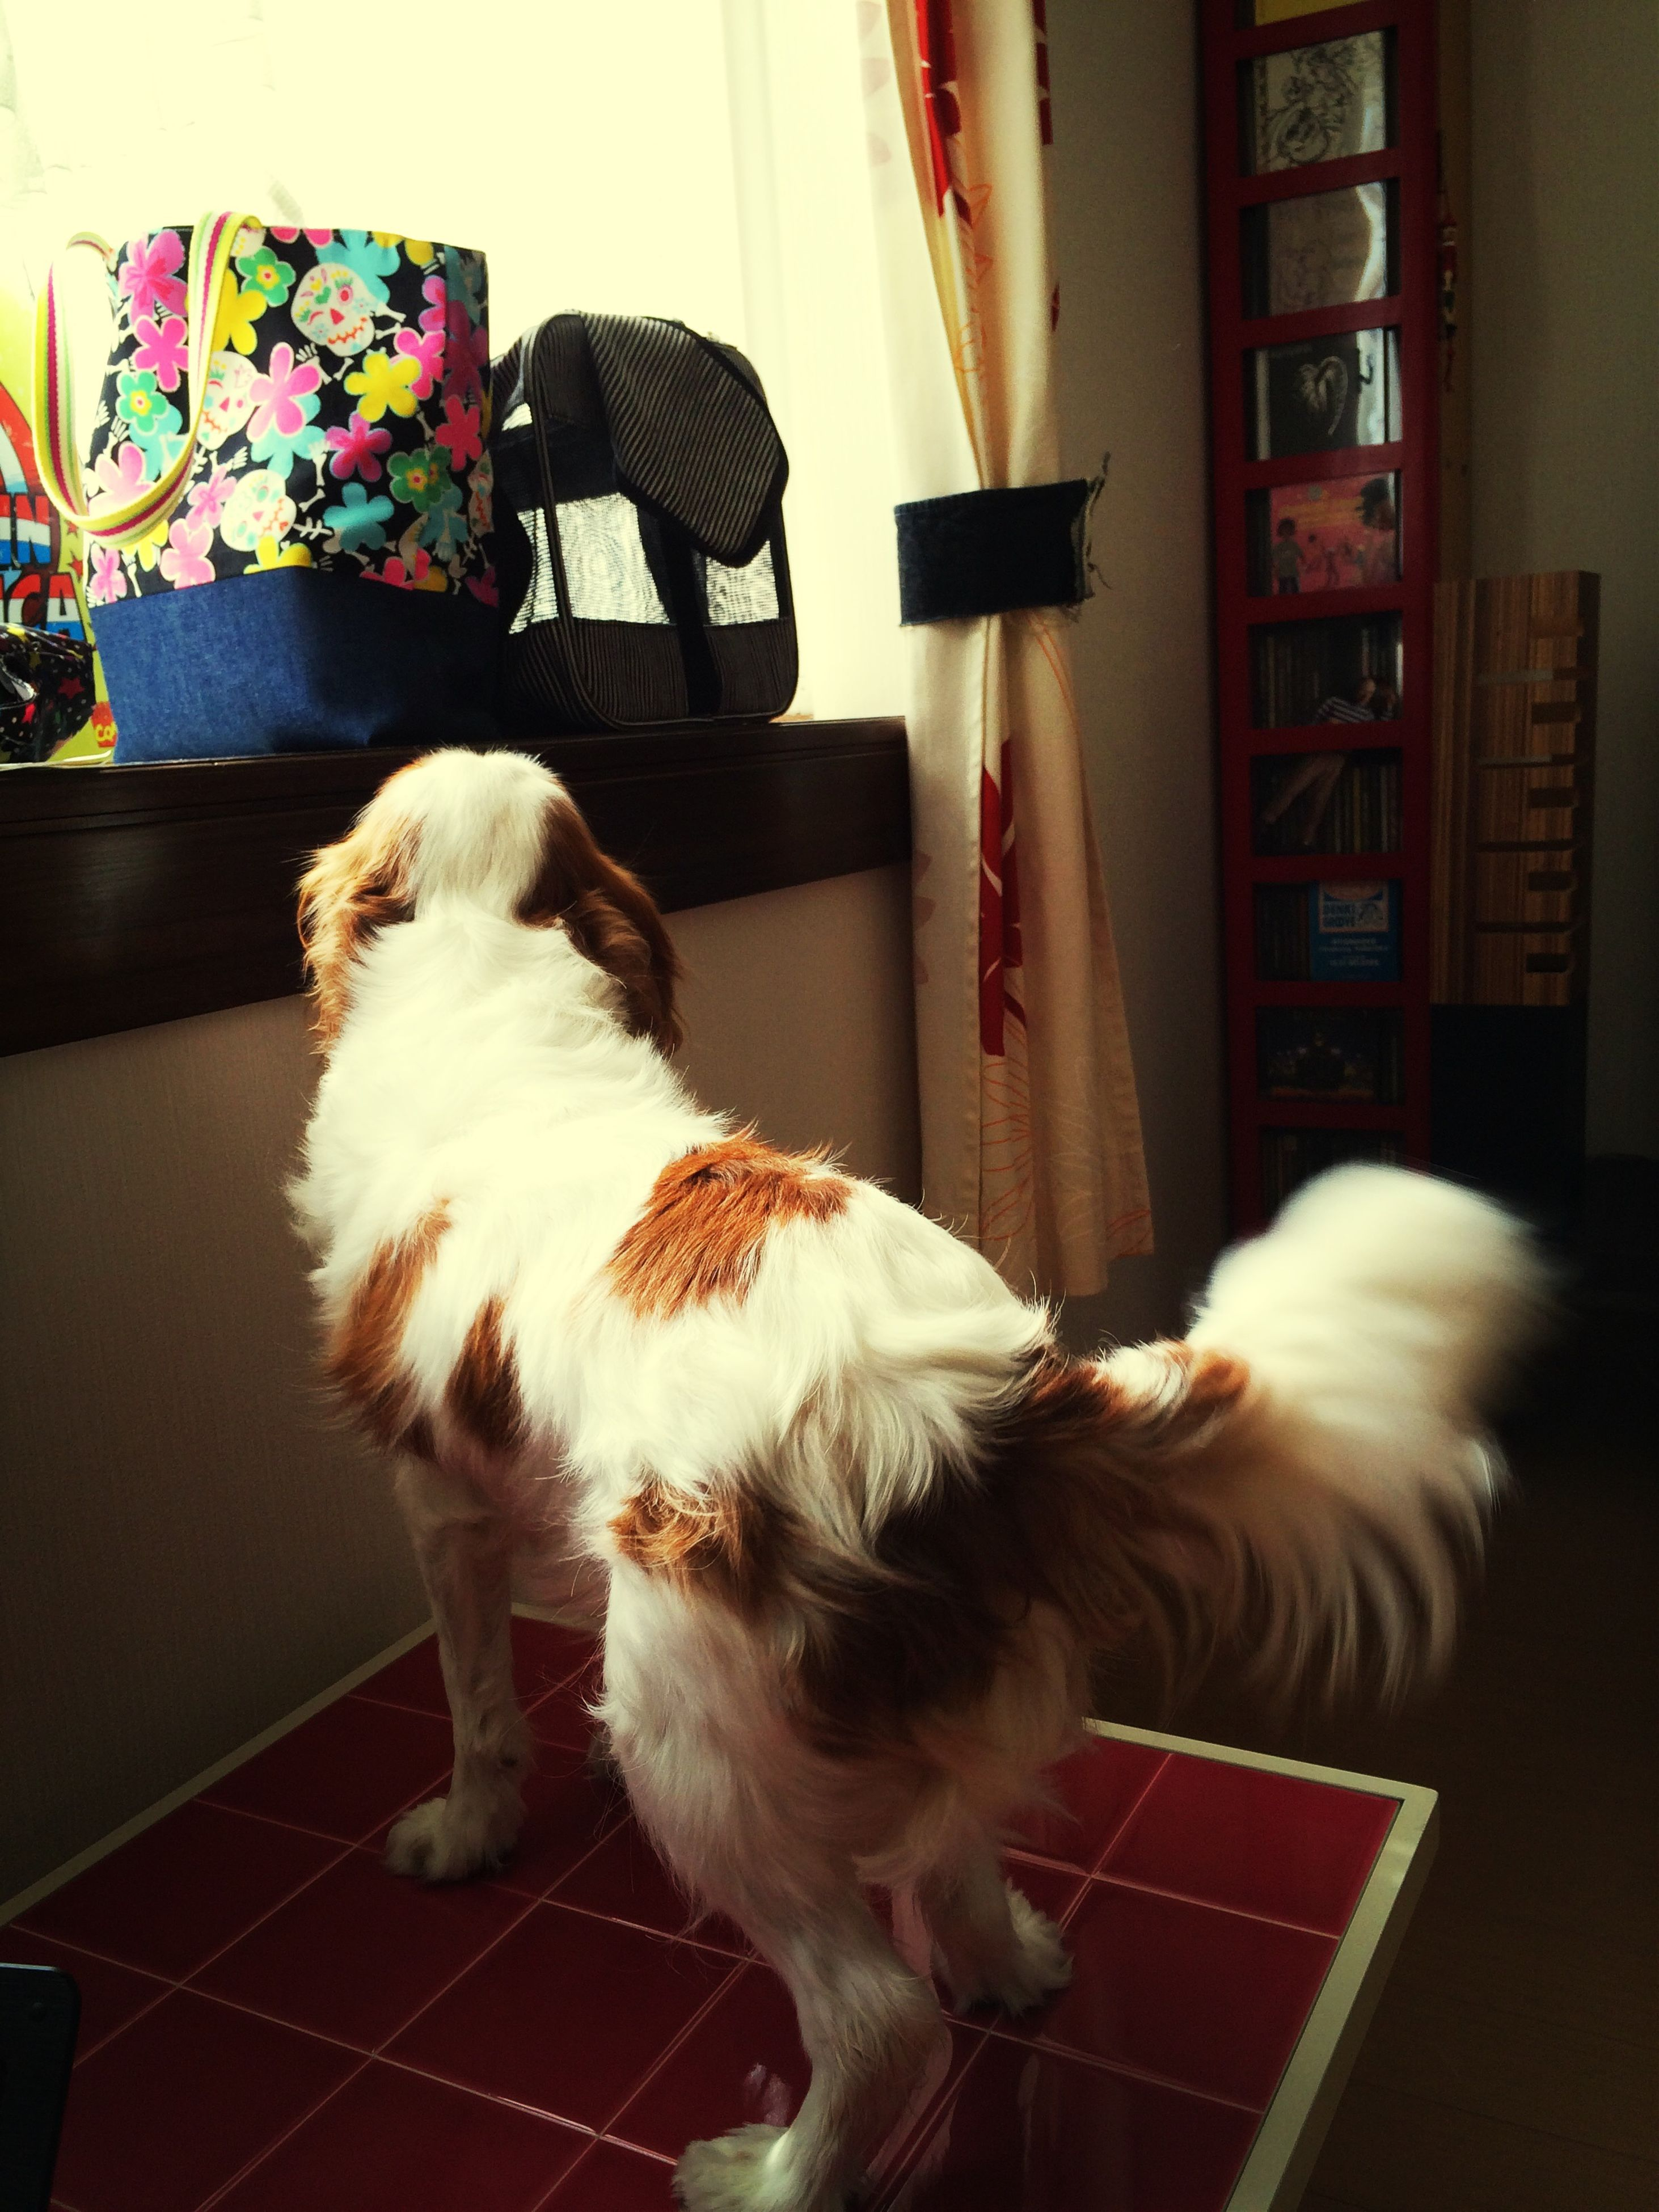 domestic animals, pets, animal themes, mammal, one animal, indoors, dog, home interior, relaxation, portrait, looking at camera, sitting, no people, animal hair, home, full length, high angle view, pampered pets, pet collar